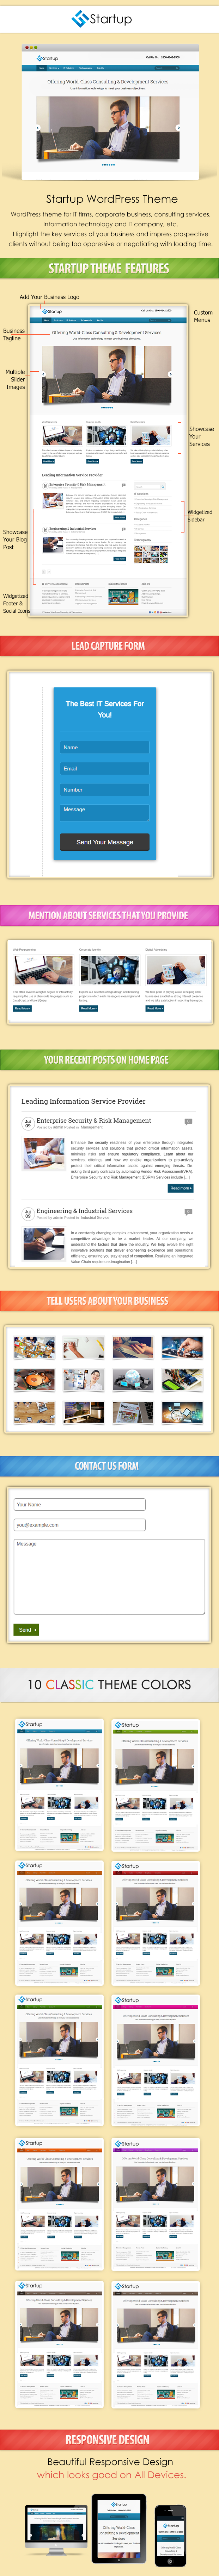 it-service-wordpress-theme-Sale-page-preview